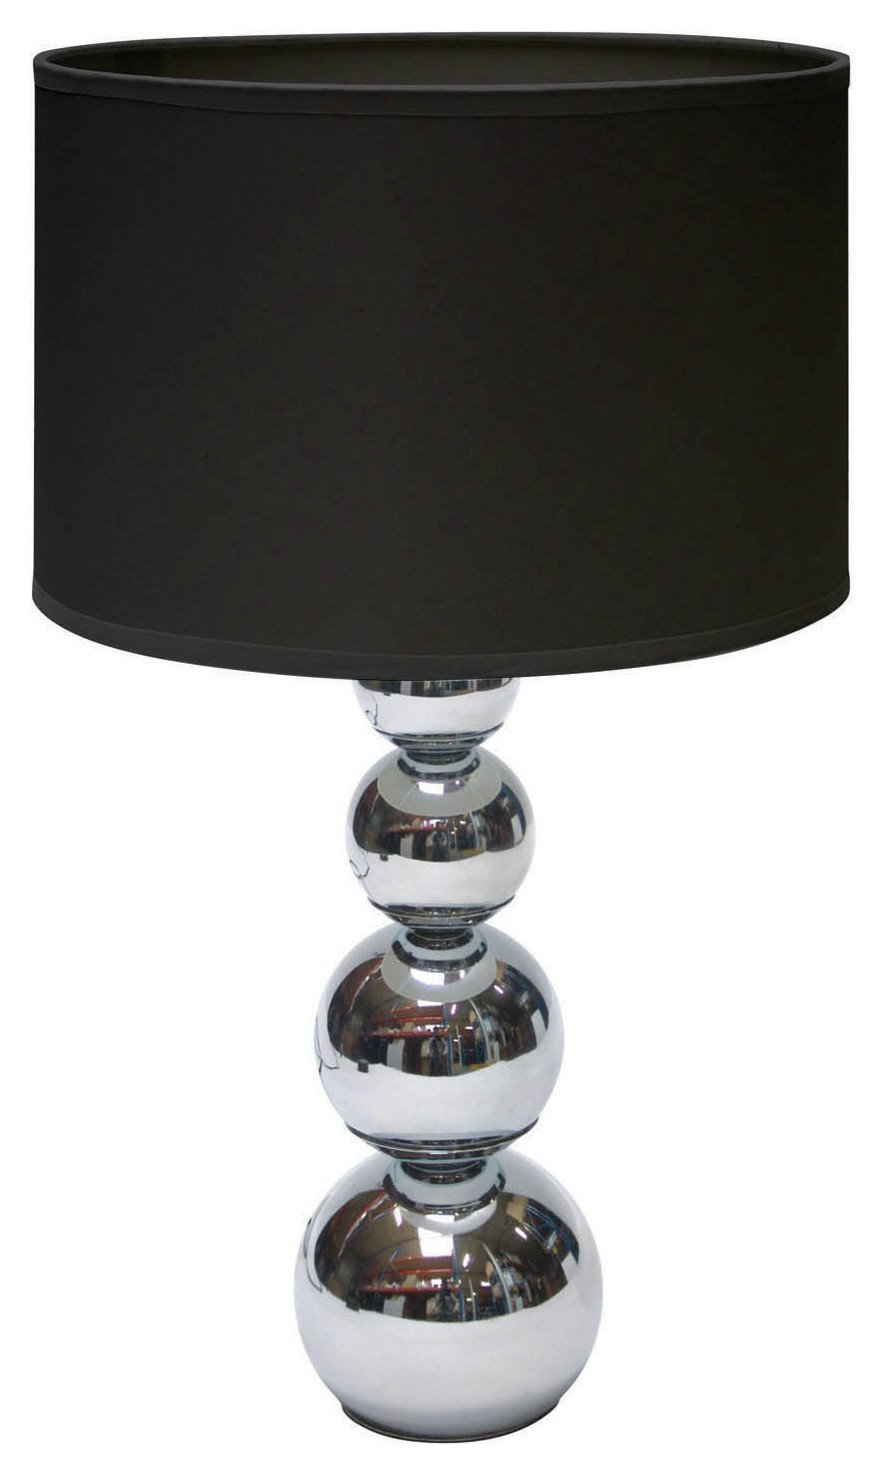 Image of Cameo Touch - Table Lamp with Black Shade